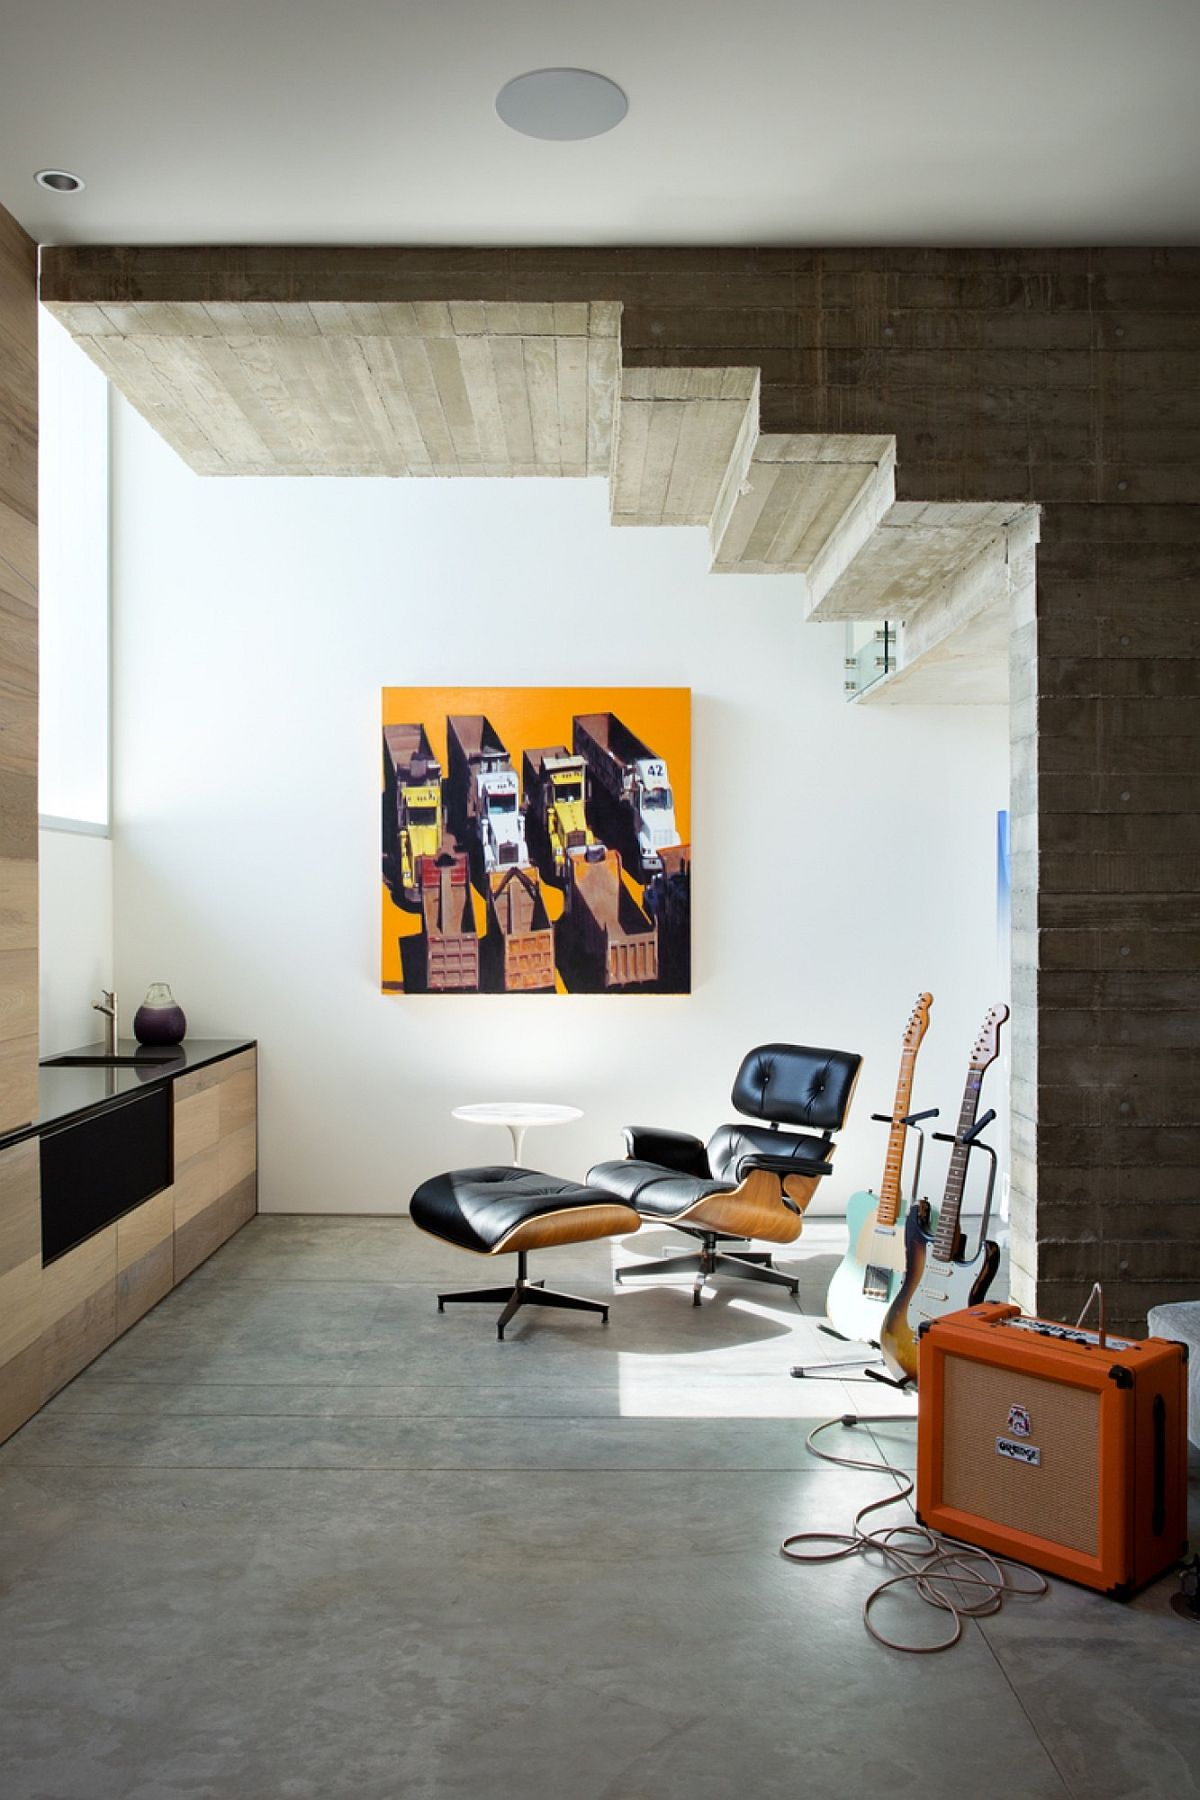 Small recreational and relaxation space under the stairway with the Eames Lounger